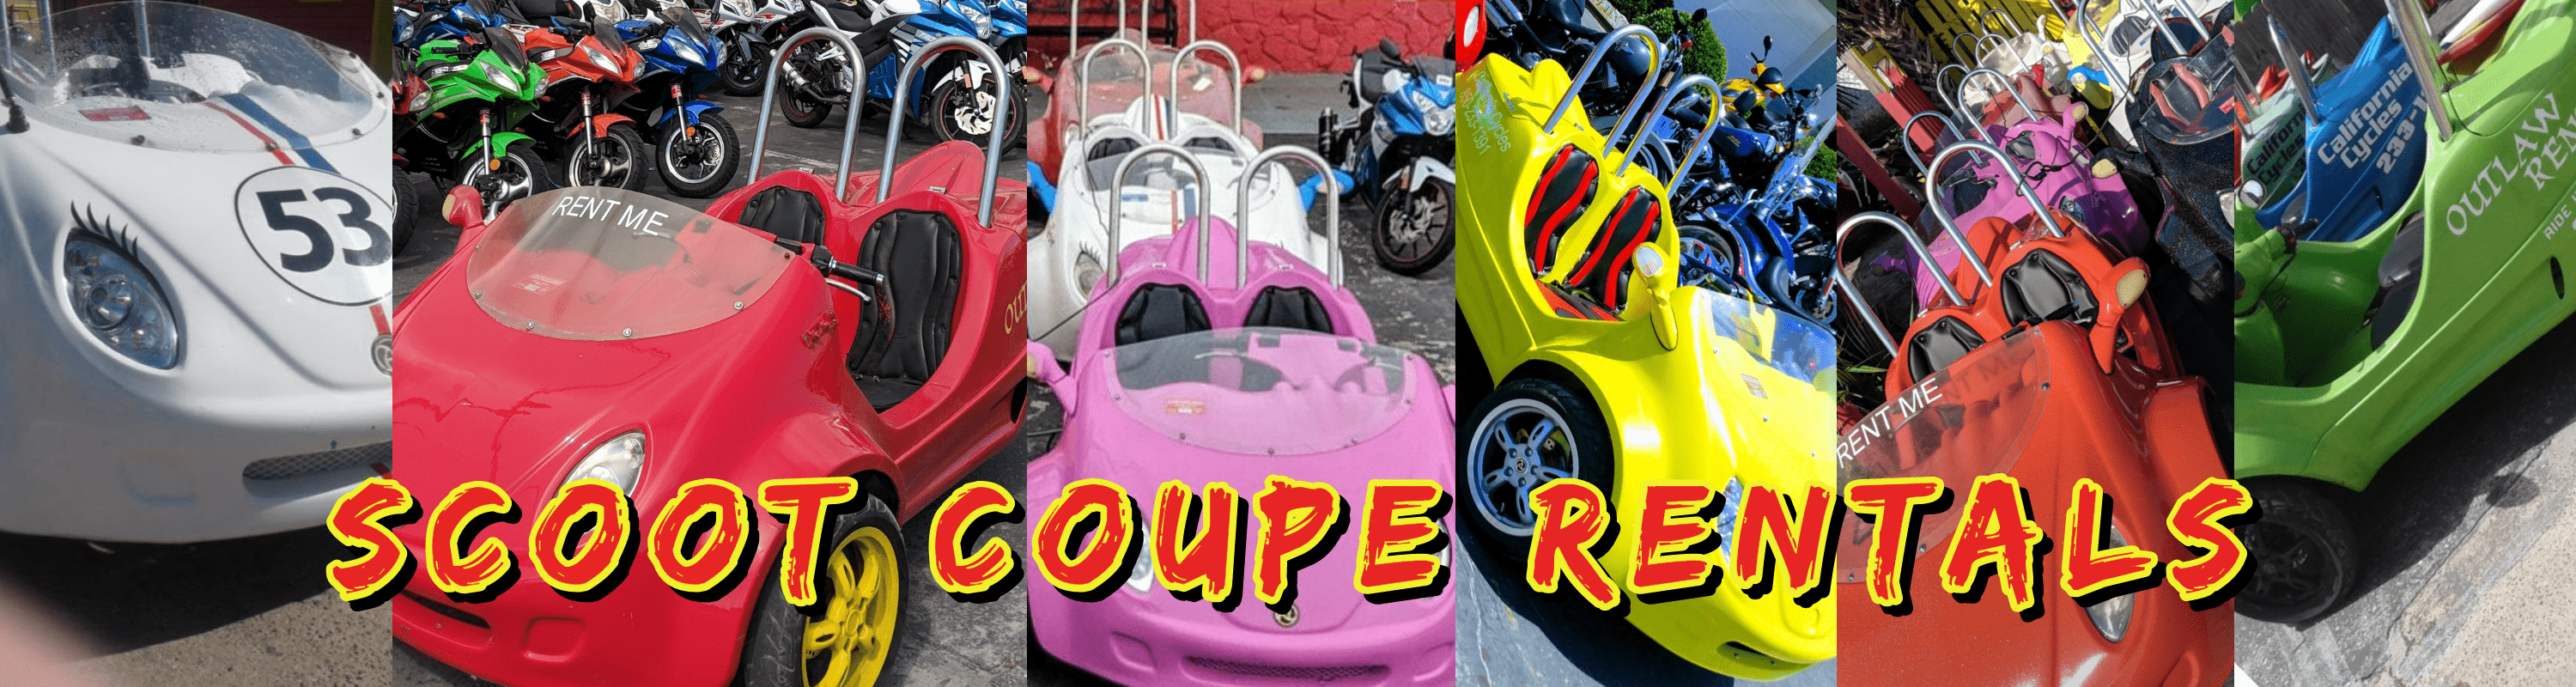 Outlaw Rentals - Scoot Coupe Rentals Panama City Beach